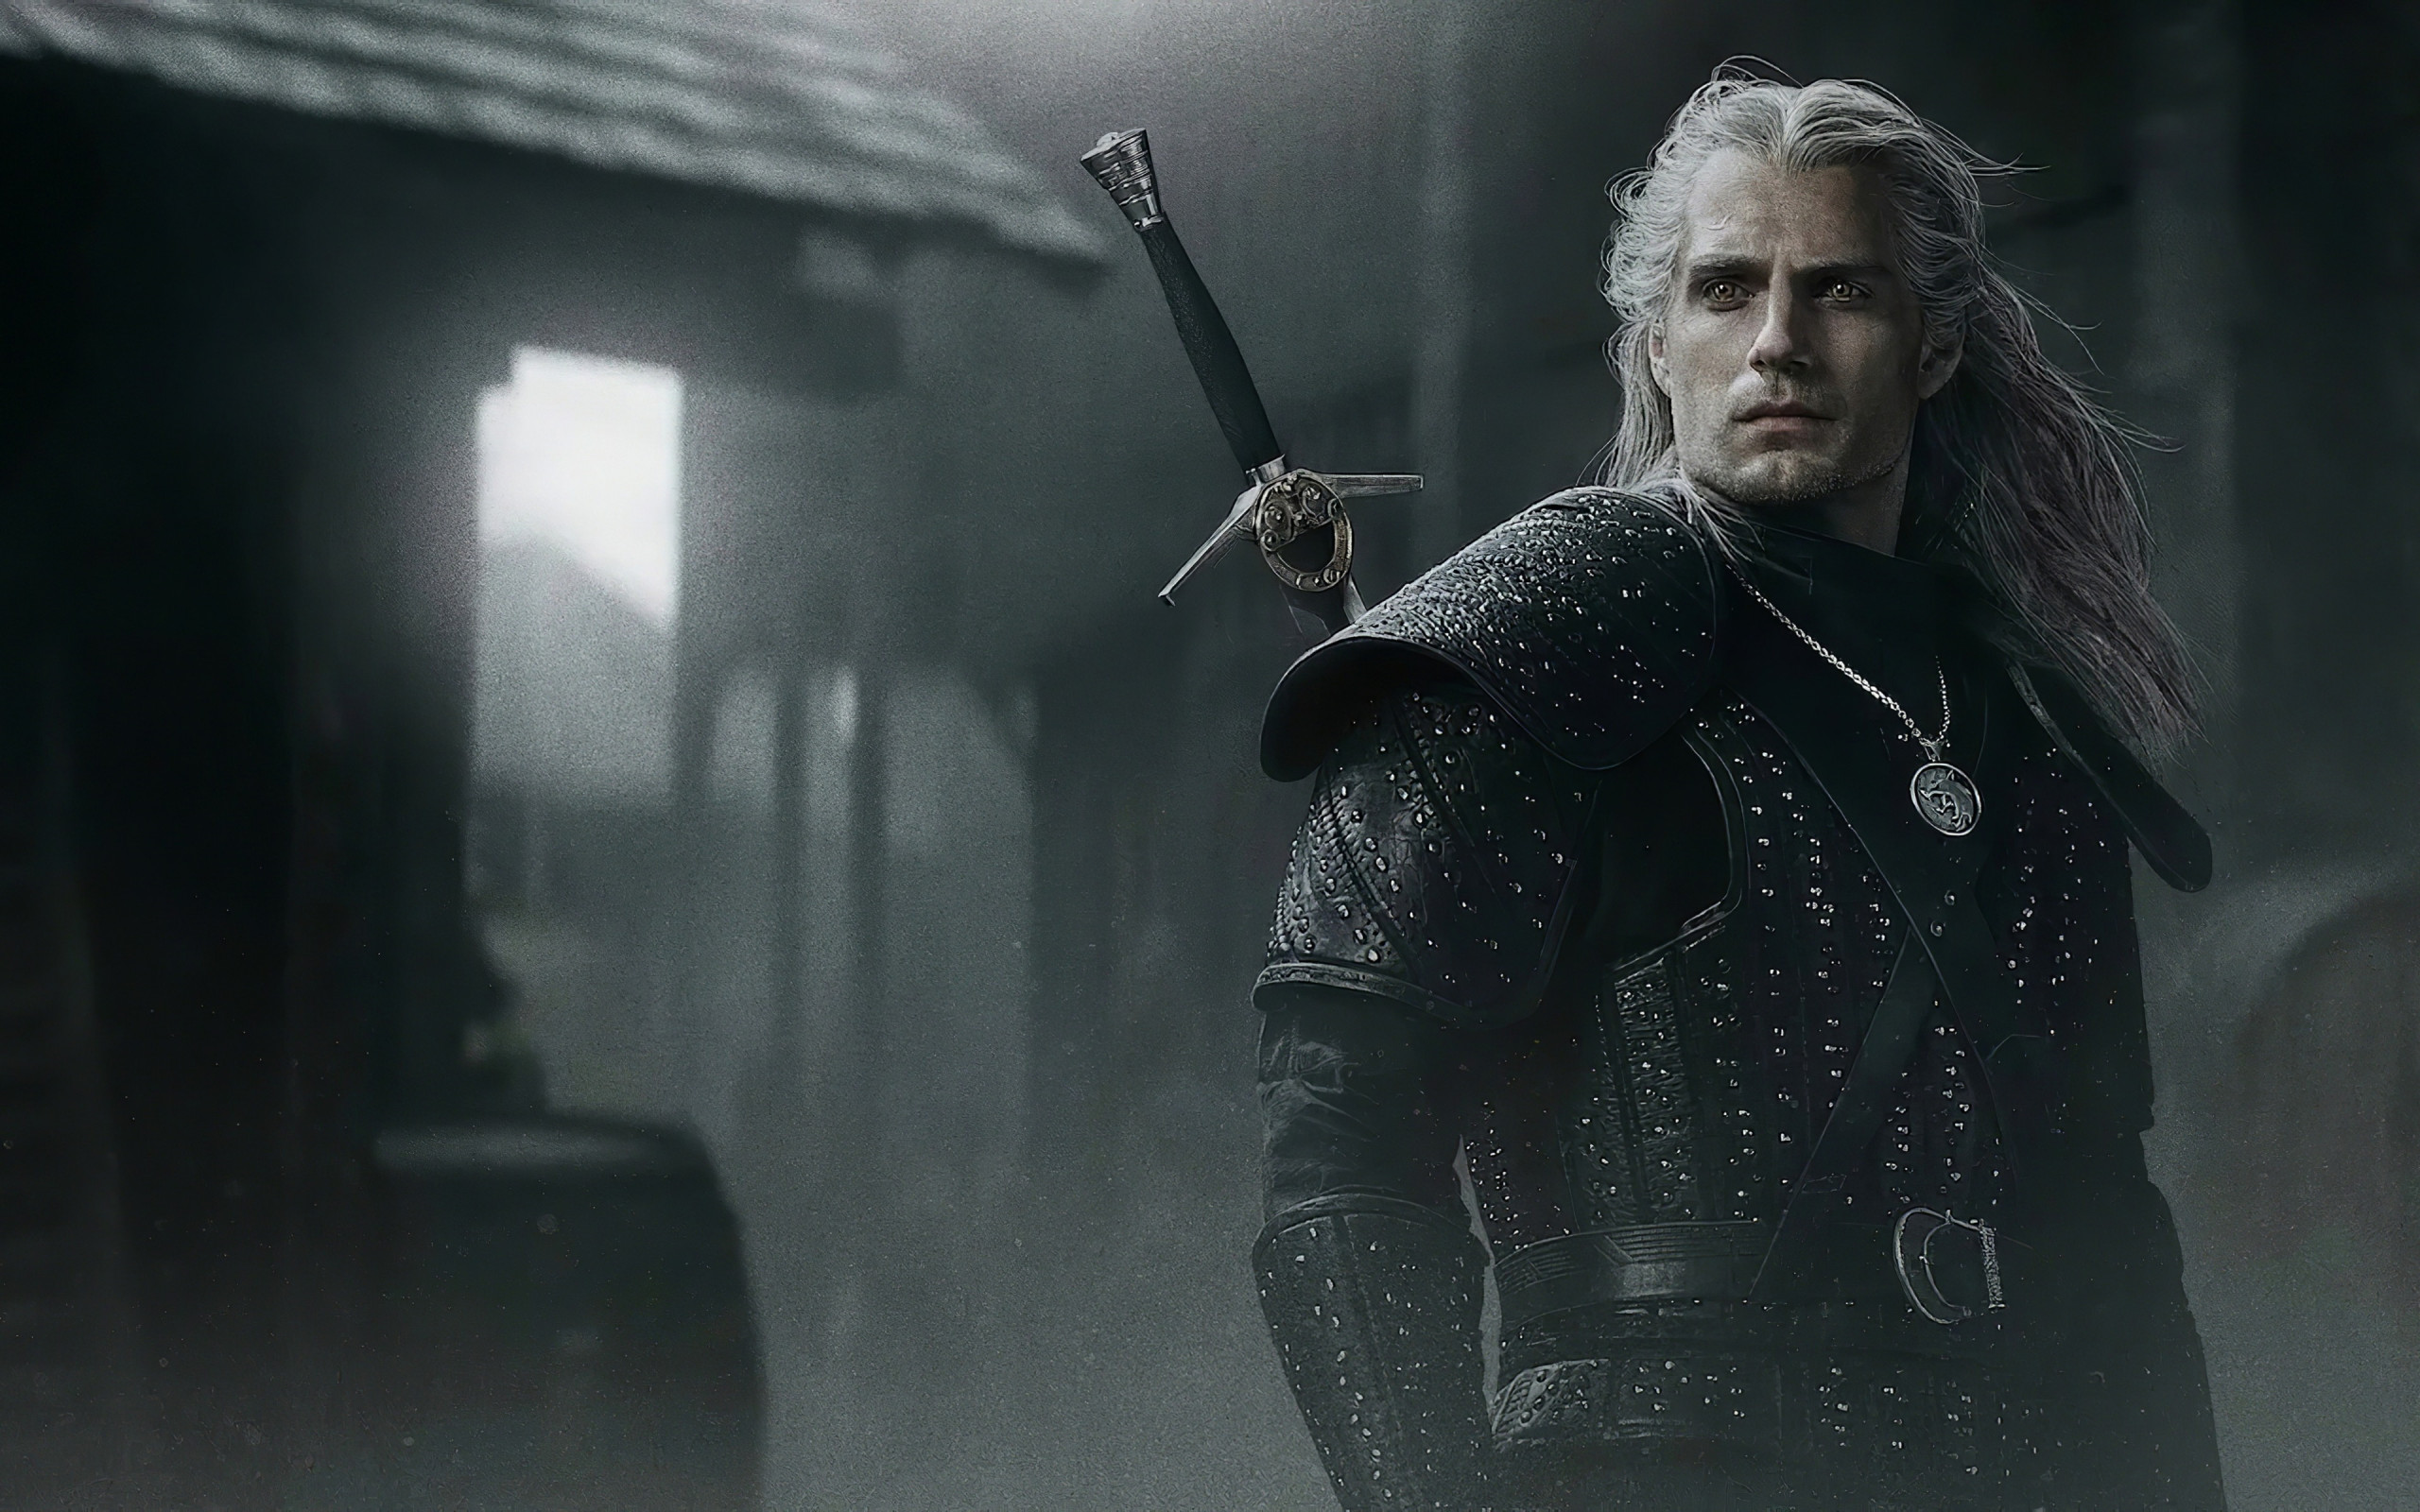 Henry Cavli in The Witcher wallpaper 2560x1600